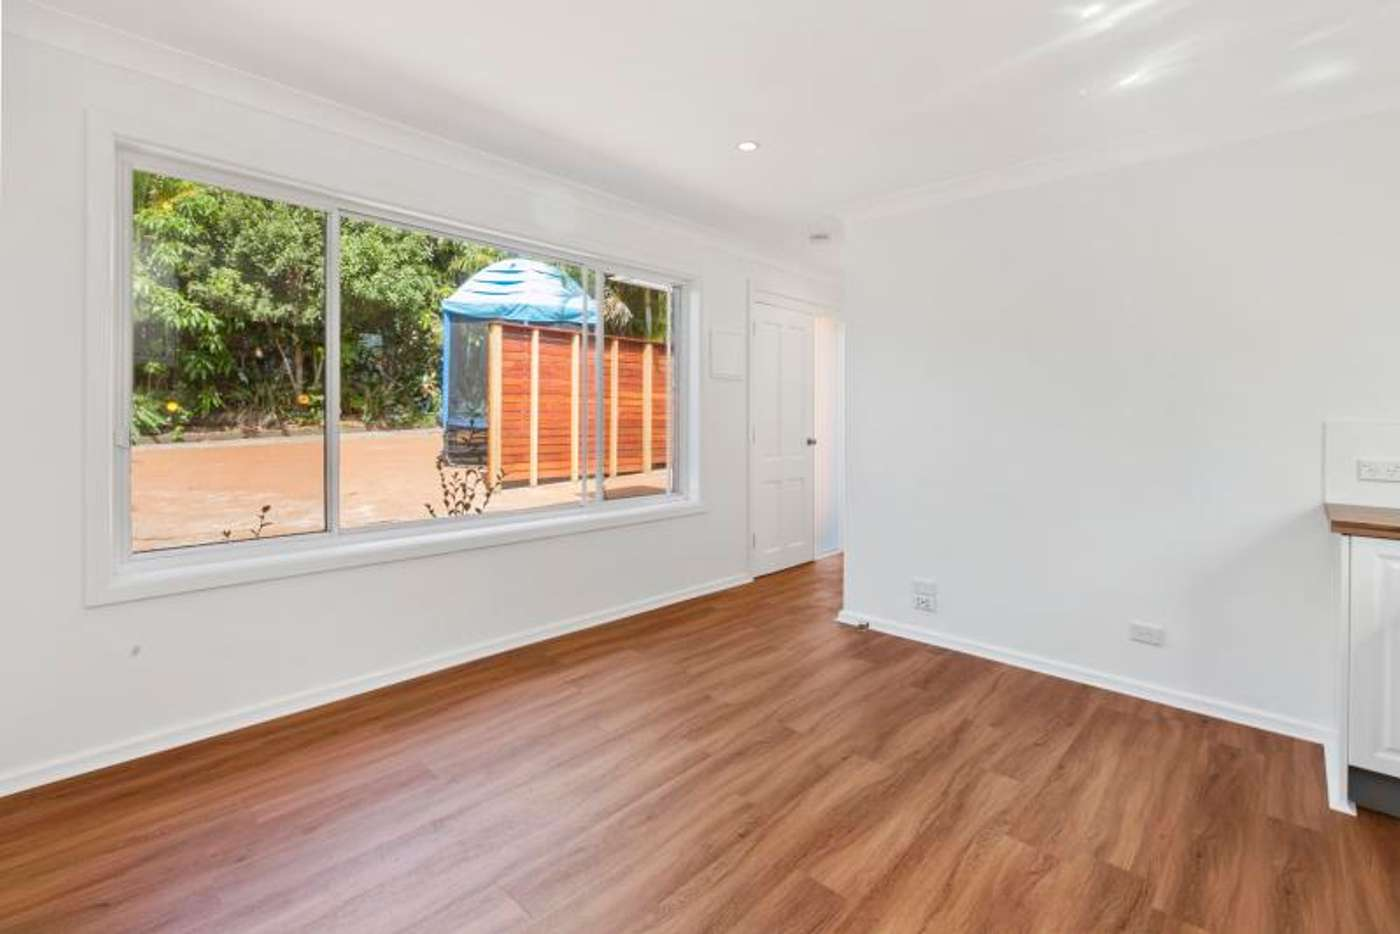 Fifth view of Homely flat listing, 75c Lantana Avenue, Collaroy Plateau NSW 2097